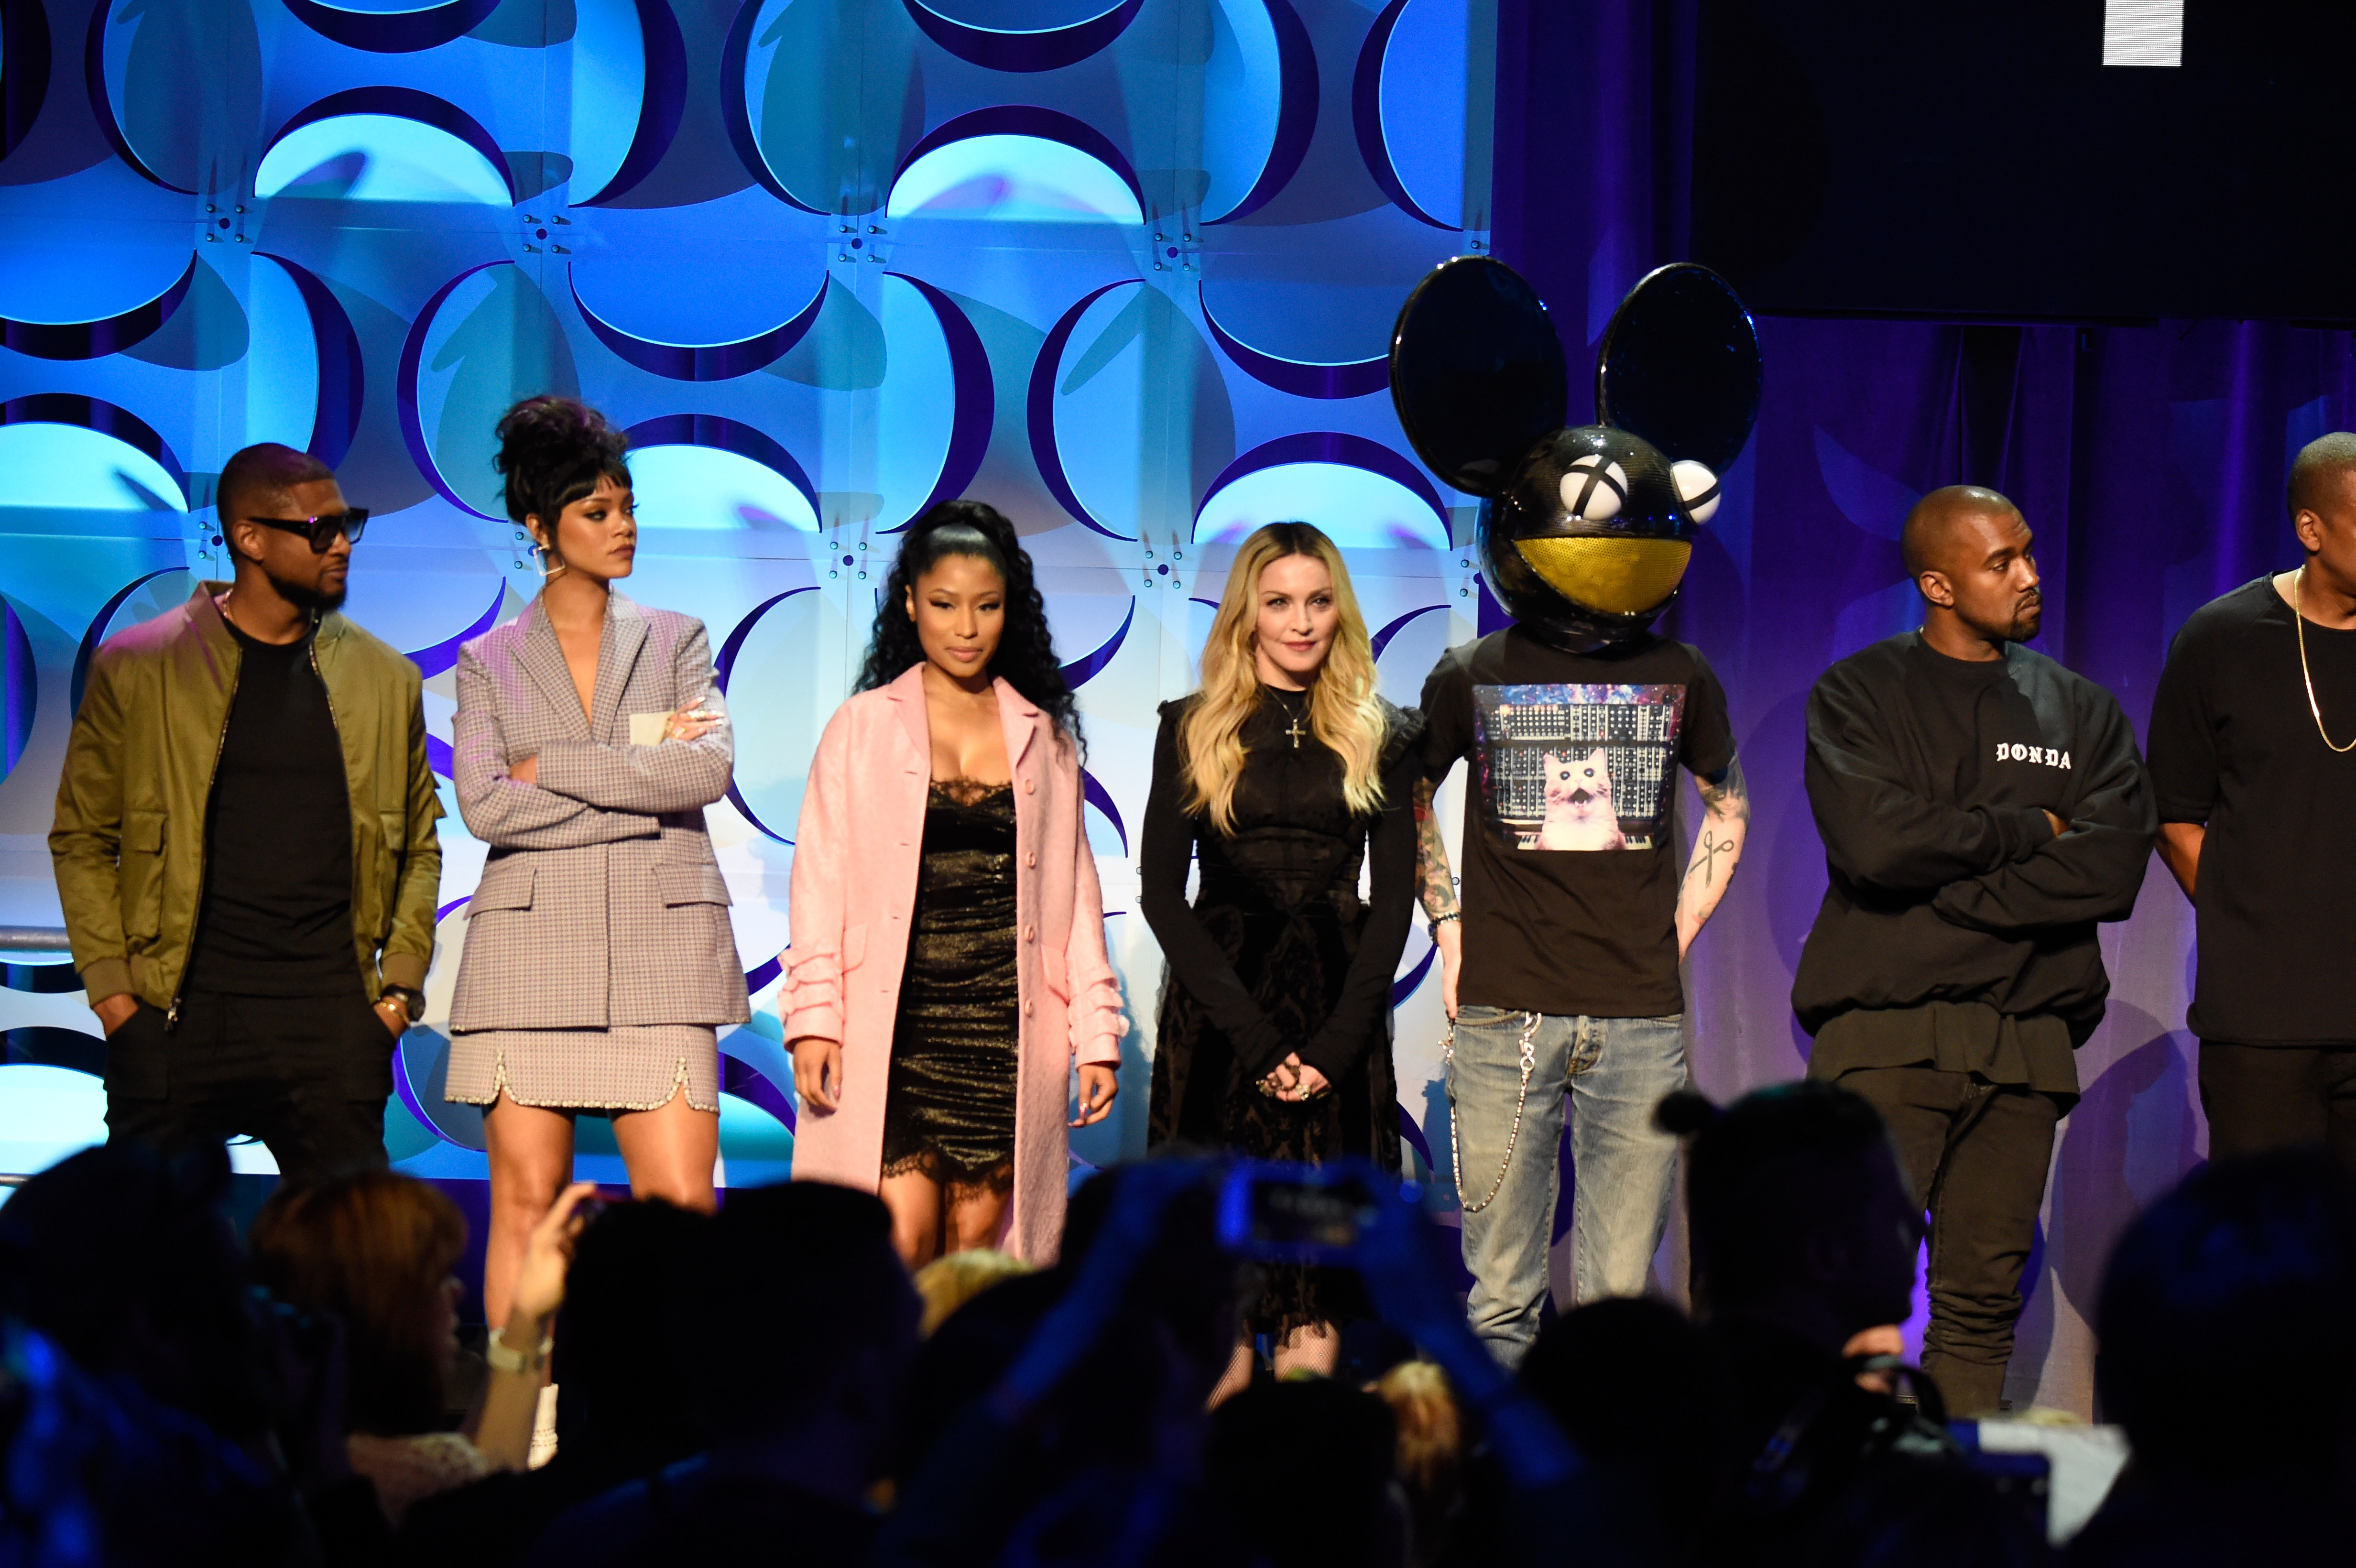 NEW YORK, NY - MARCH 30:  Rihanna,  Nicki Minaj, Madonna, Deadmau5 and Kanye West attend the Tidal launch event #TIDALforALL